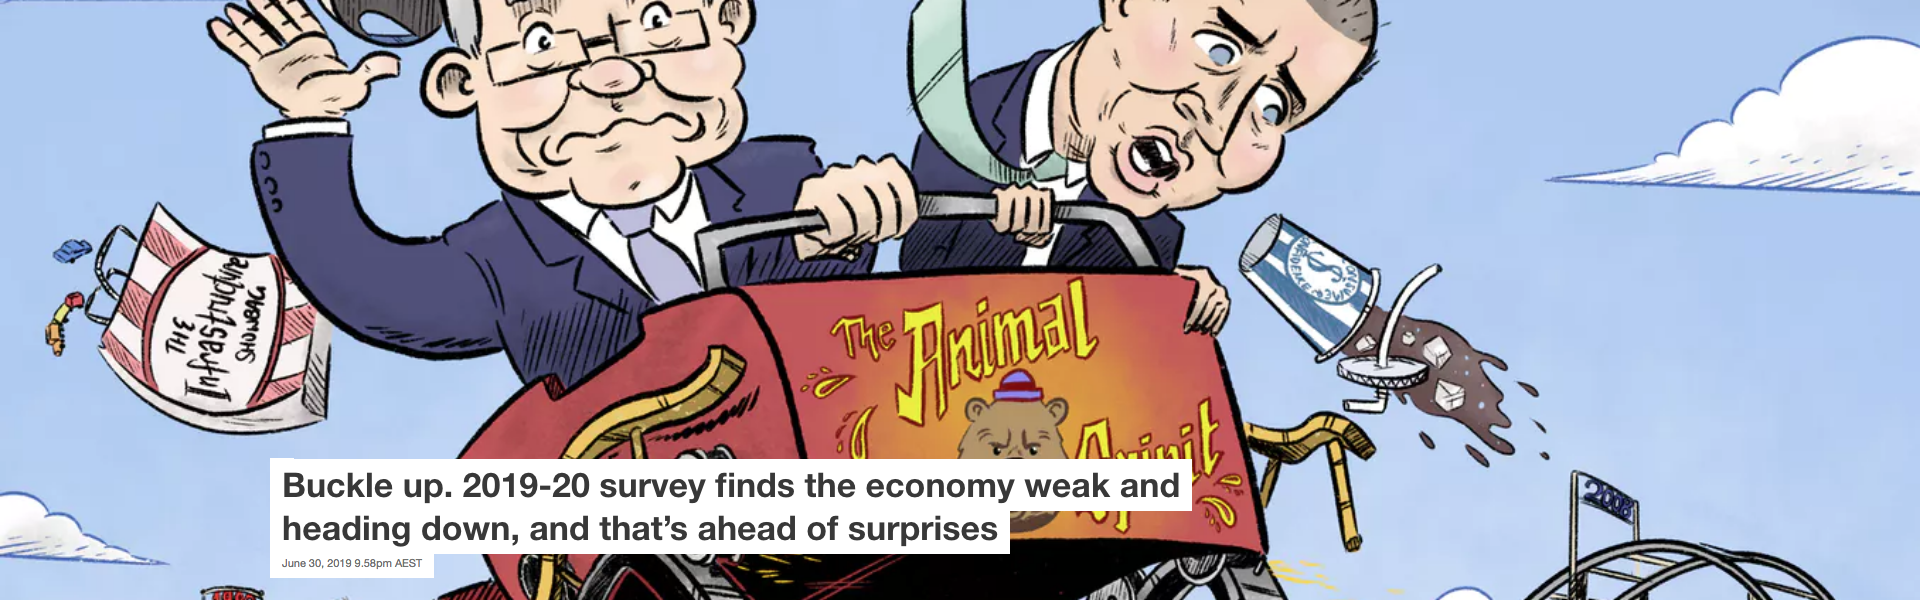 Screenshot_2019-07-01 Buckle up 2019-20 survey finds the economy weak and heading down, and that's ahead of surprises.png